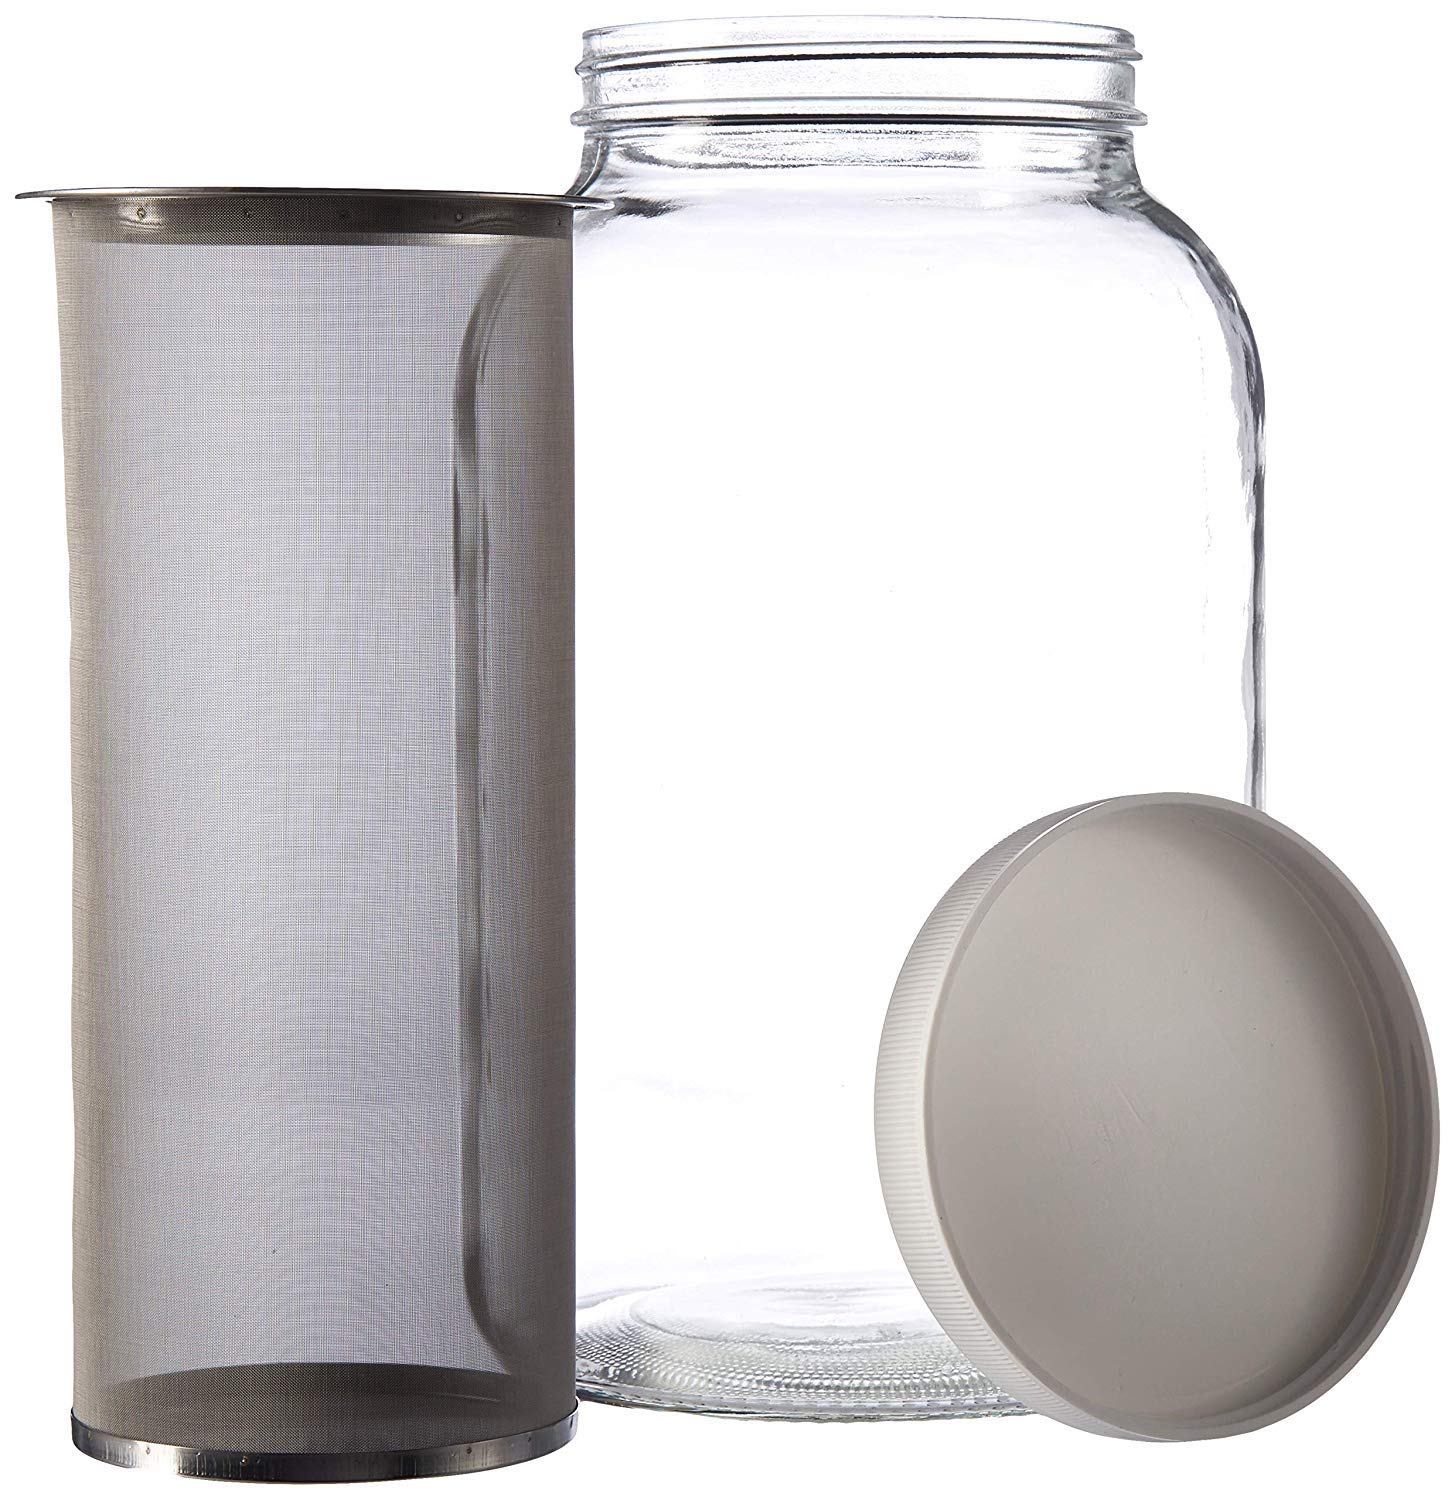 1 Gallon Cold Brew Coffee Maker - Gallon Mason Jar with Stainless Steel Mesh Filter Insert and Lid for Large Batch Cold Brew Coffee and Tea Batches - by kitchentoolz by kitchentoolz